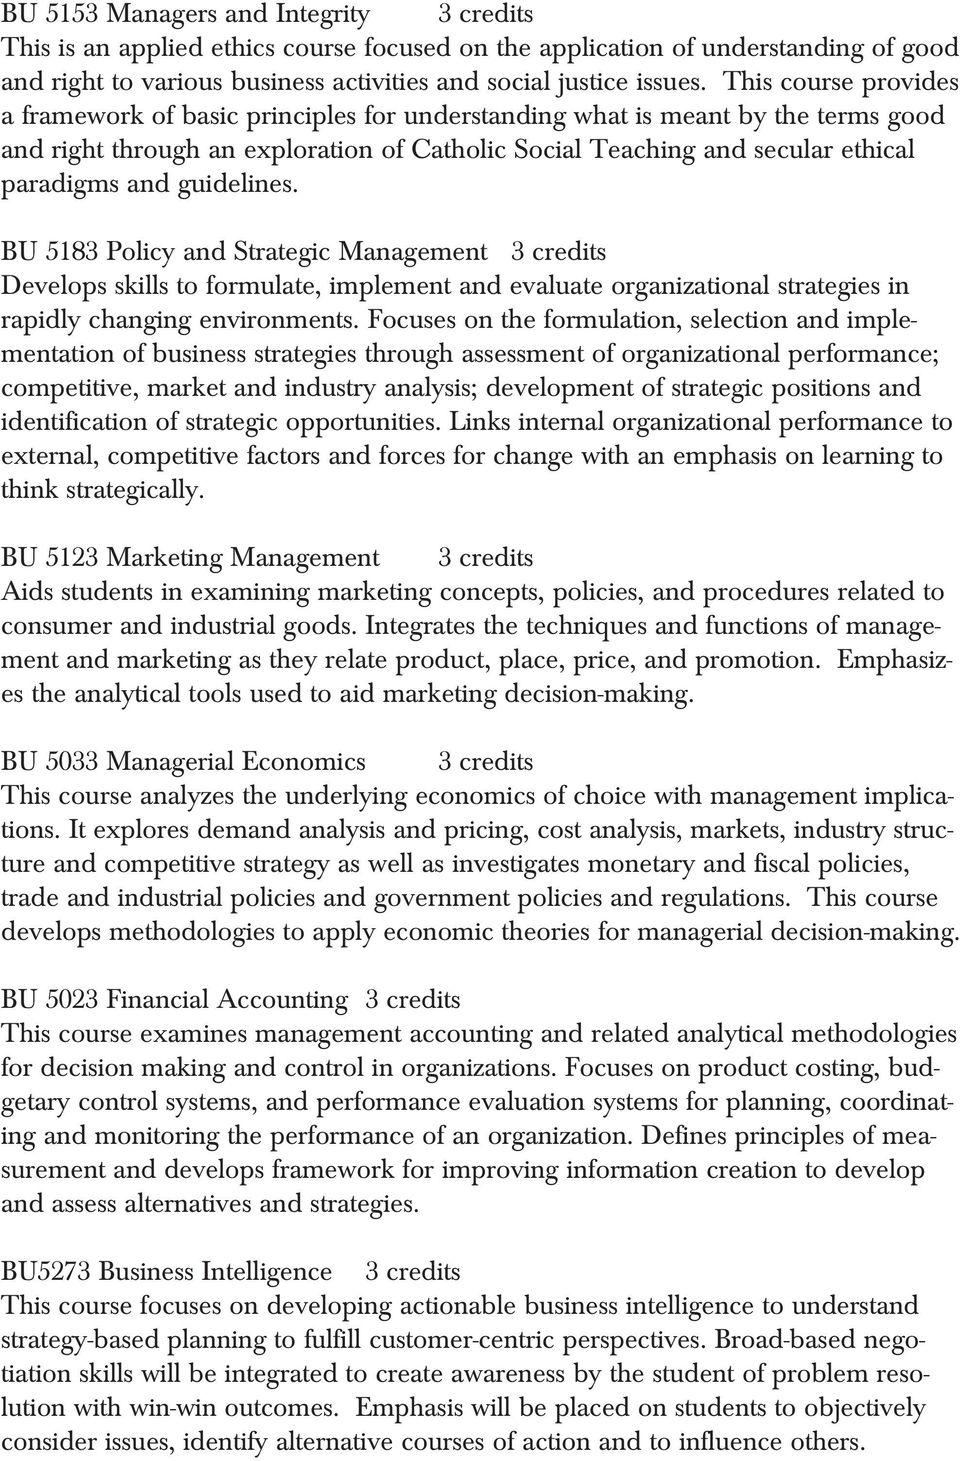 guidelines. BU 5183 Policy and Strategic Management 3 credits Develops skills to formulate, implement and evaluate organizational strategies in rapidly changing environments.